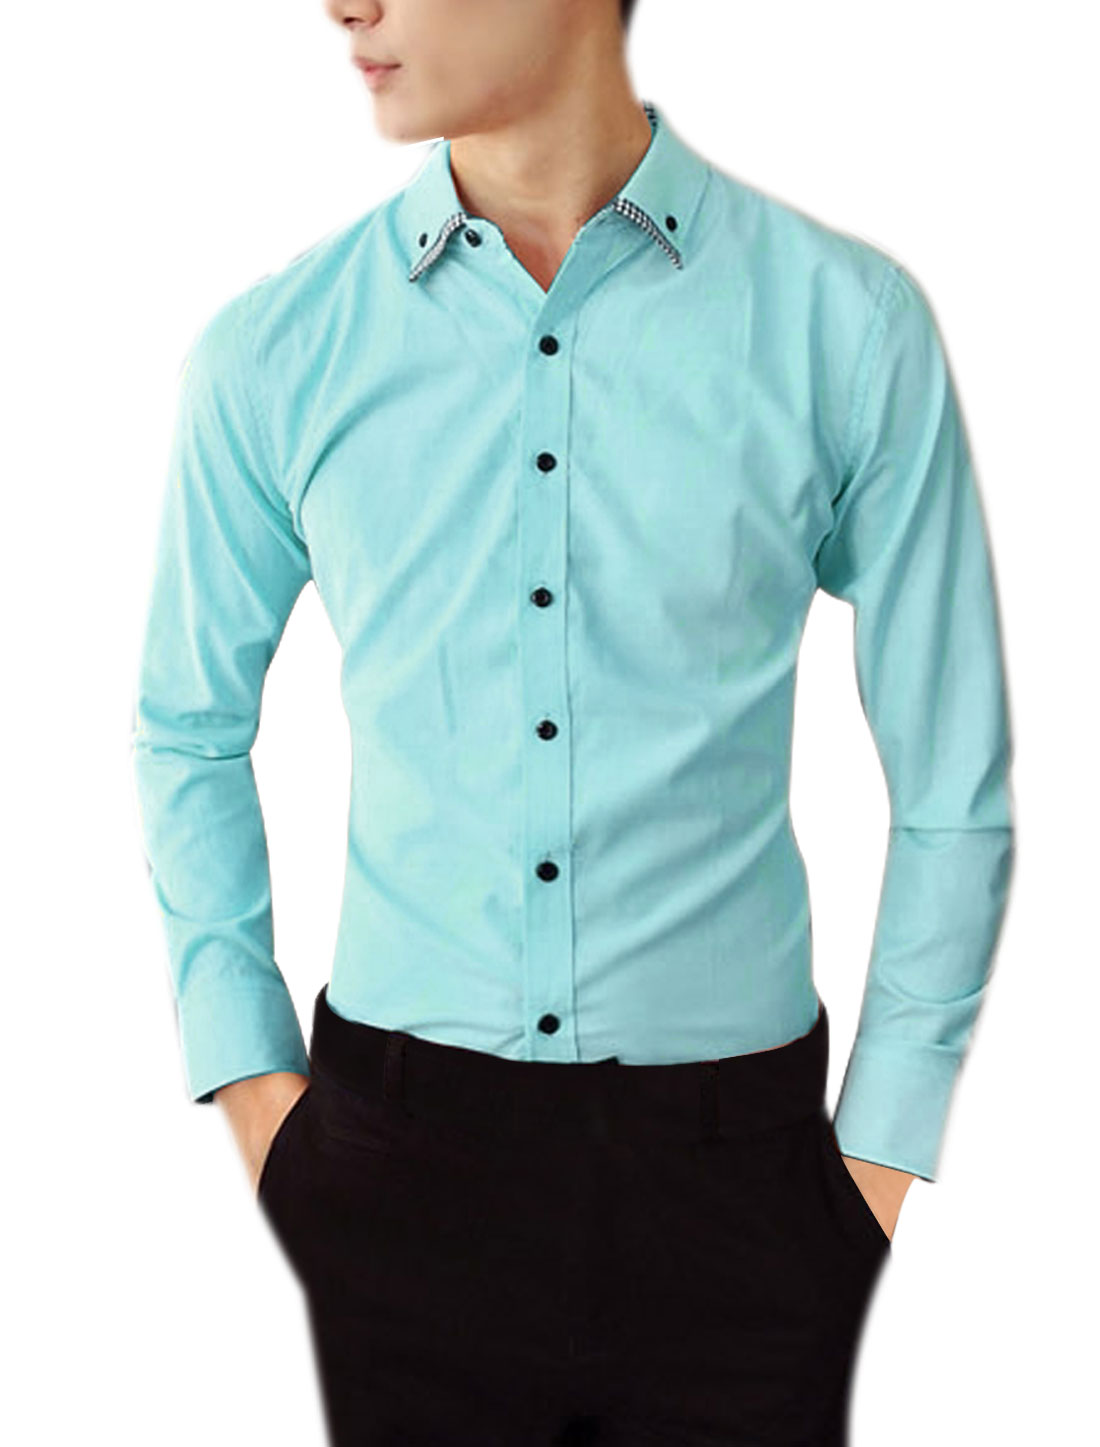 Man Chic Light Blue Point Collar Long Sleeve Slim Fit Top Shirt M